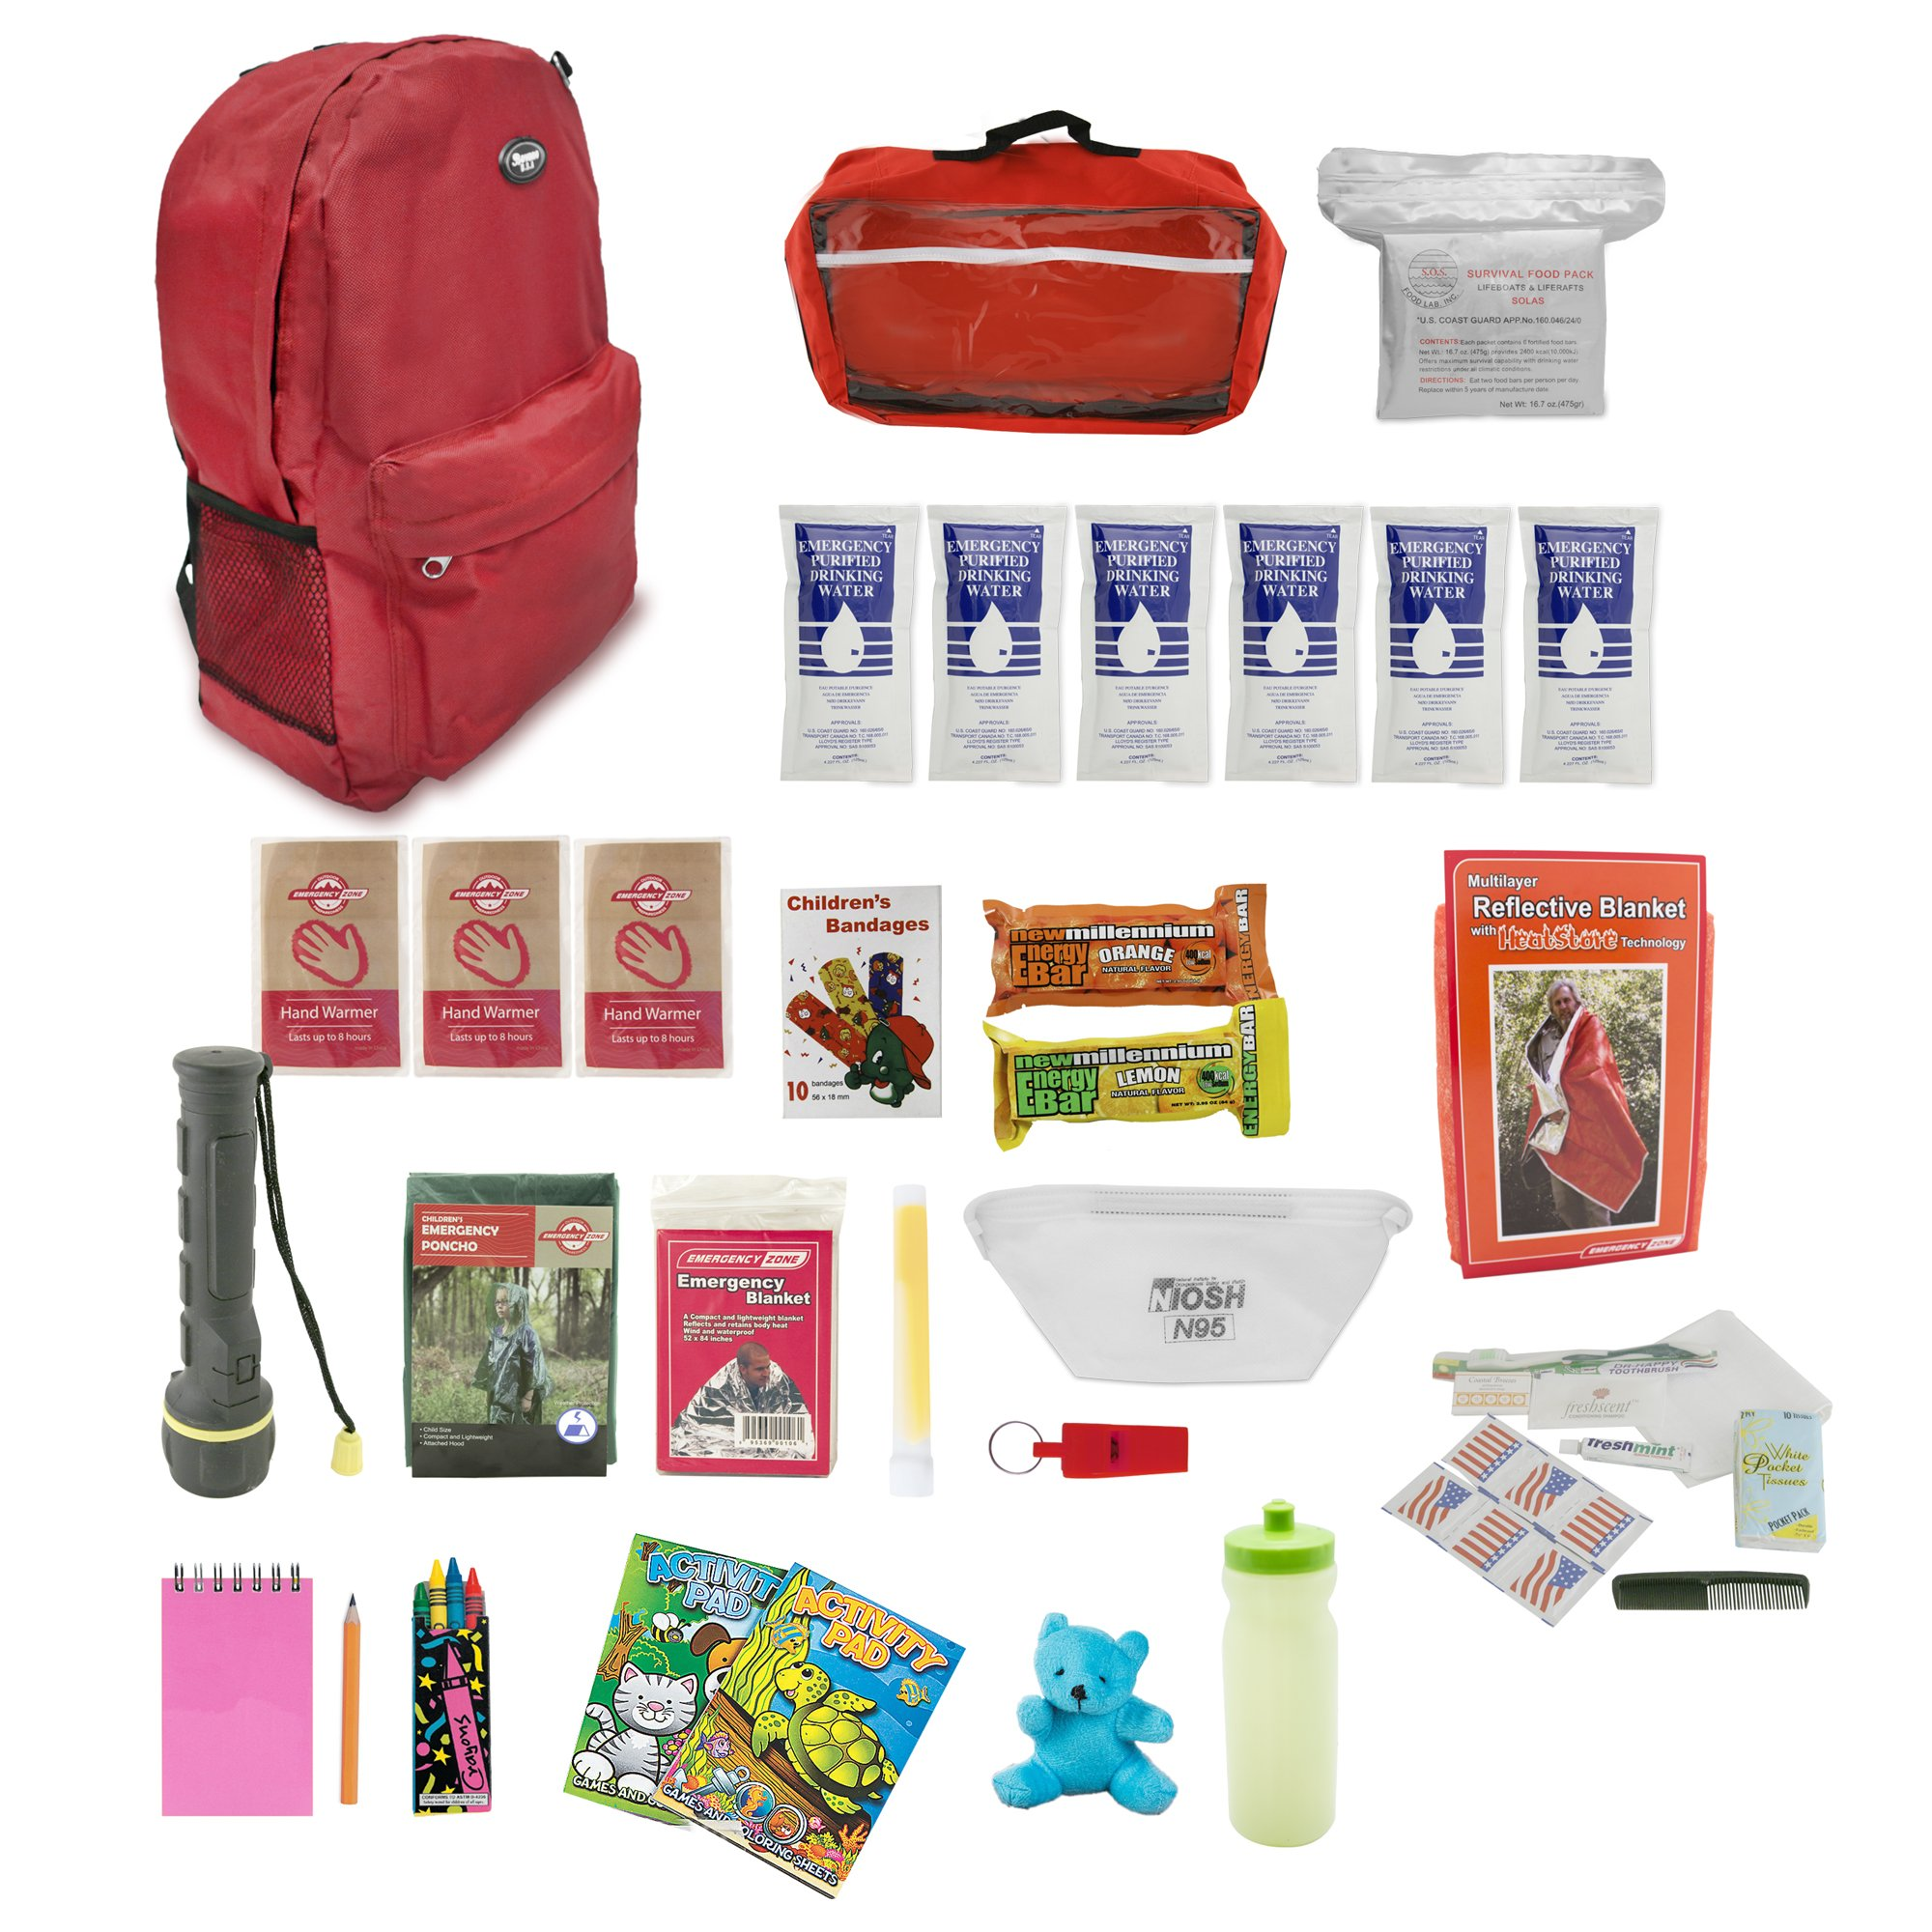 Bundle & Save | Emergency Zone 4 Person Family Prep 72 Hour Survival Kit + Deluxe Child Emergency Go Bag | Perfect Way to Prepare Your Family | Be Ready for Disasters like Hurricanes & Earthquakes by Emergency Zone (Image #6)